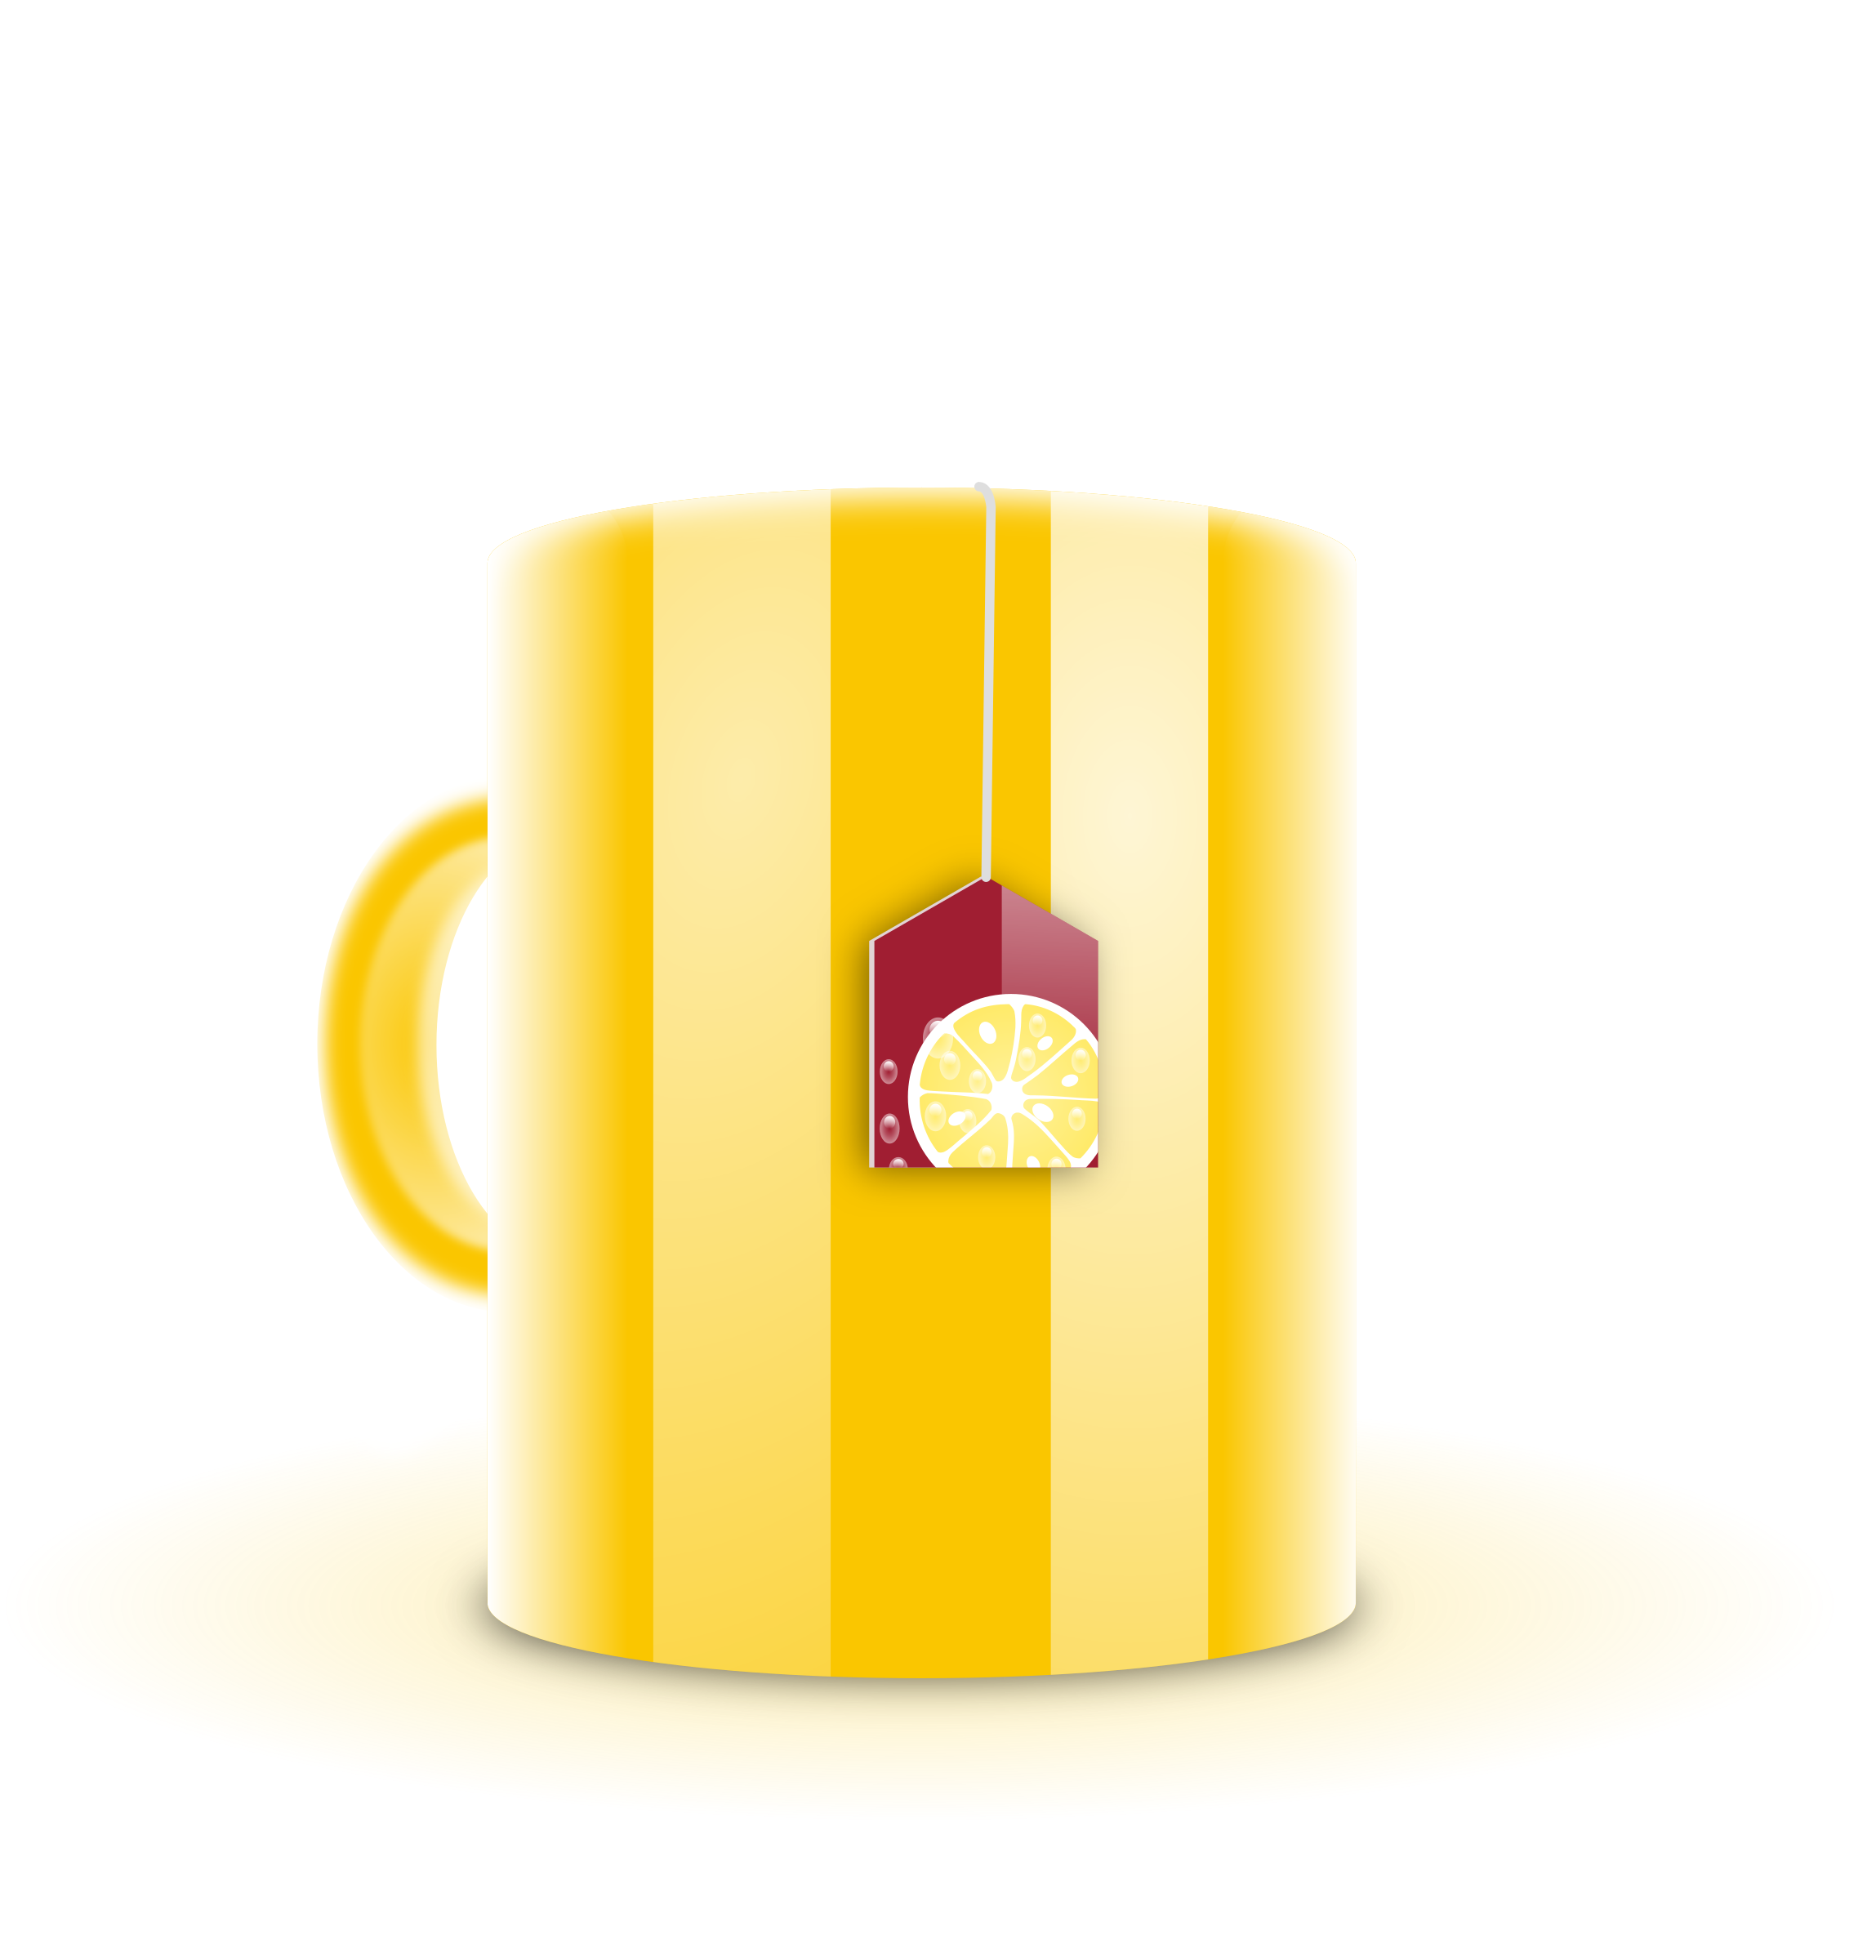 Mug of tea by ceba